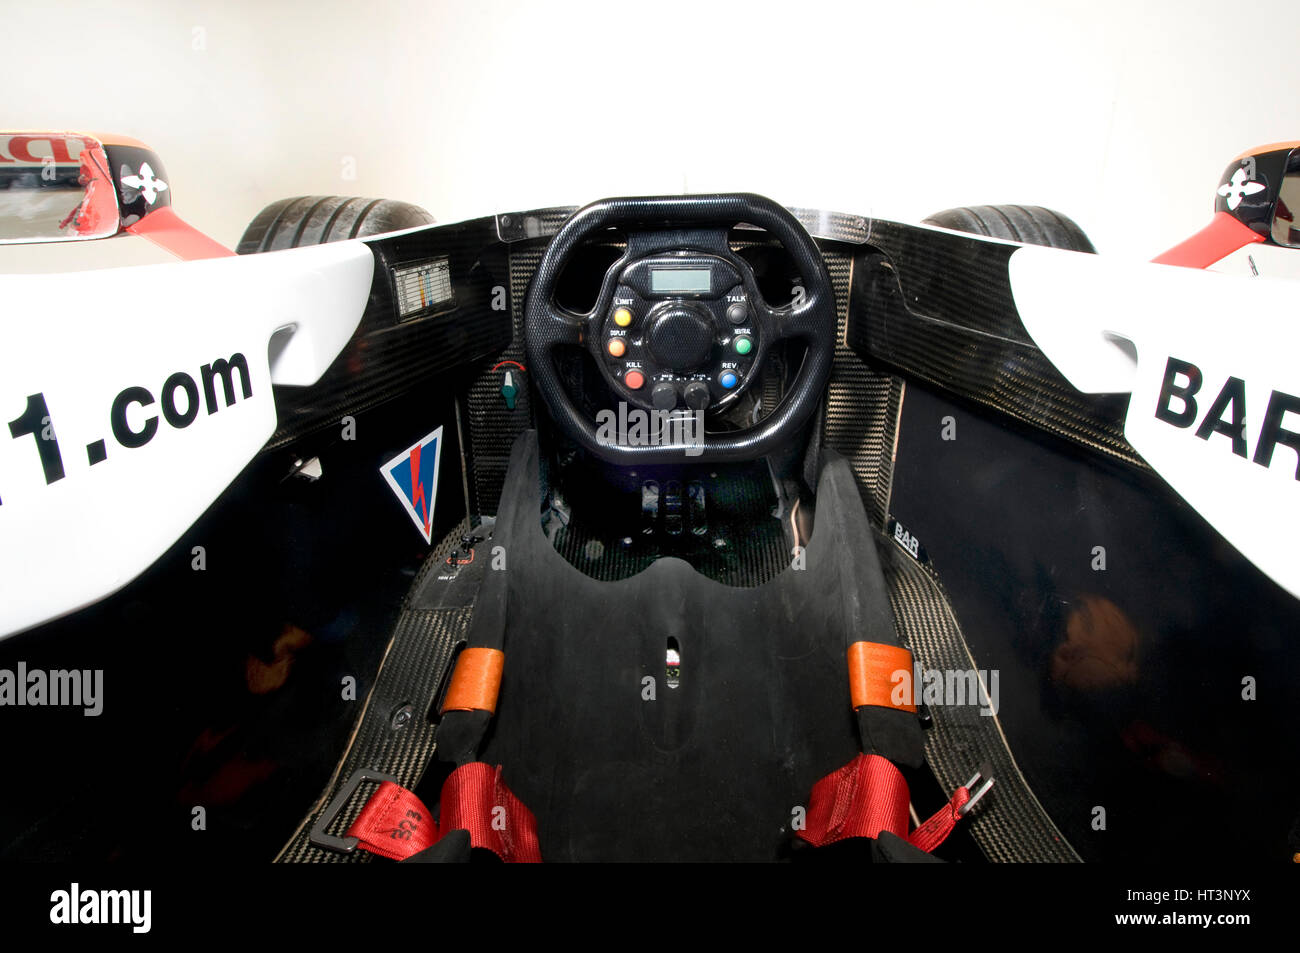 F1 Car Cockpit High Resolution Stock Photography And Images Alamy